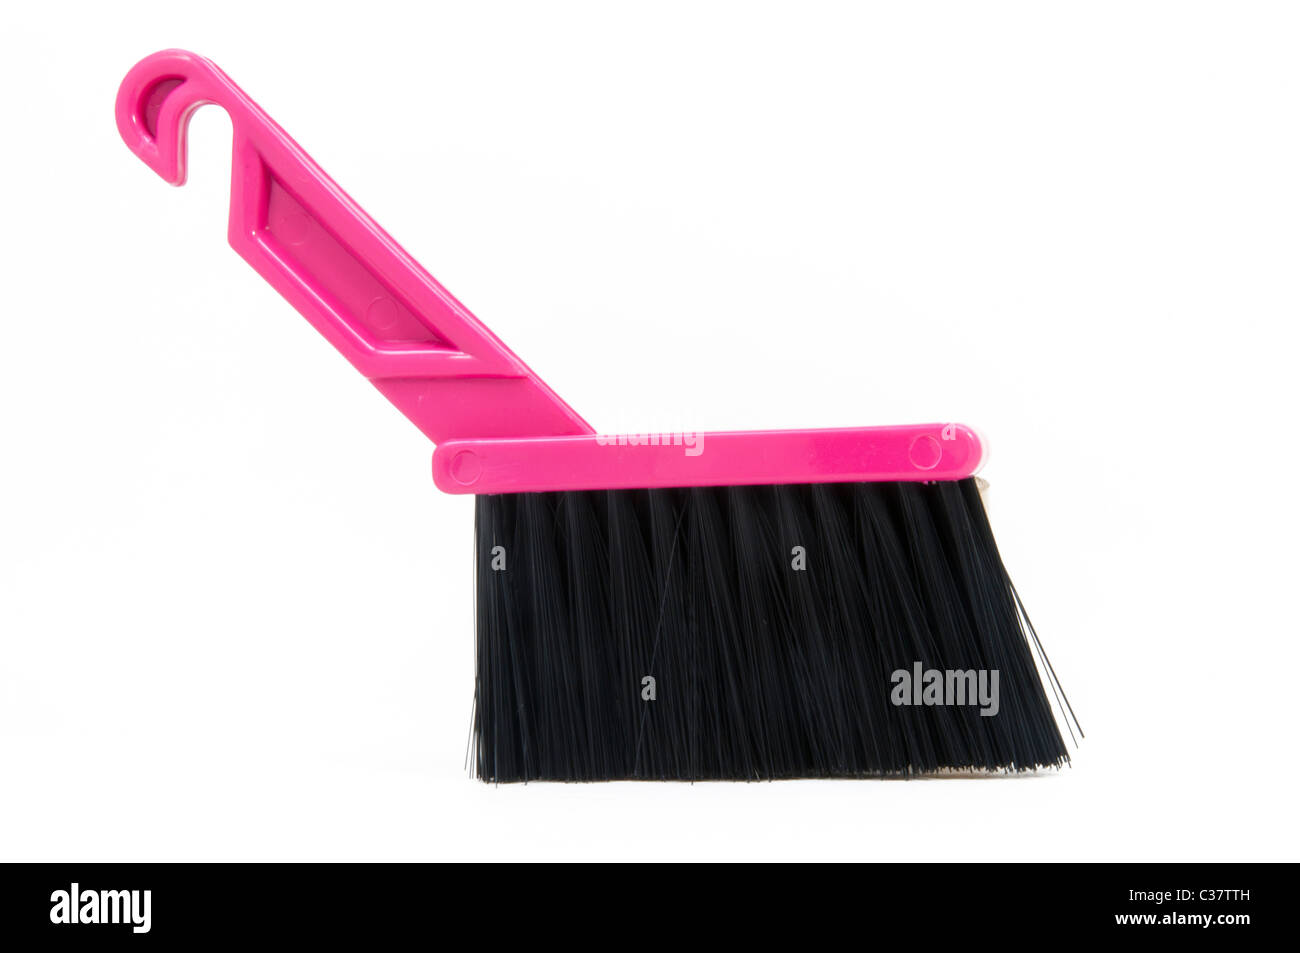 Pink Brush in white background, Cutout - Stock Image